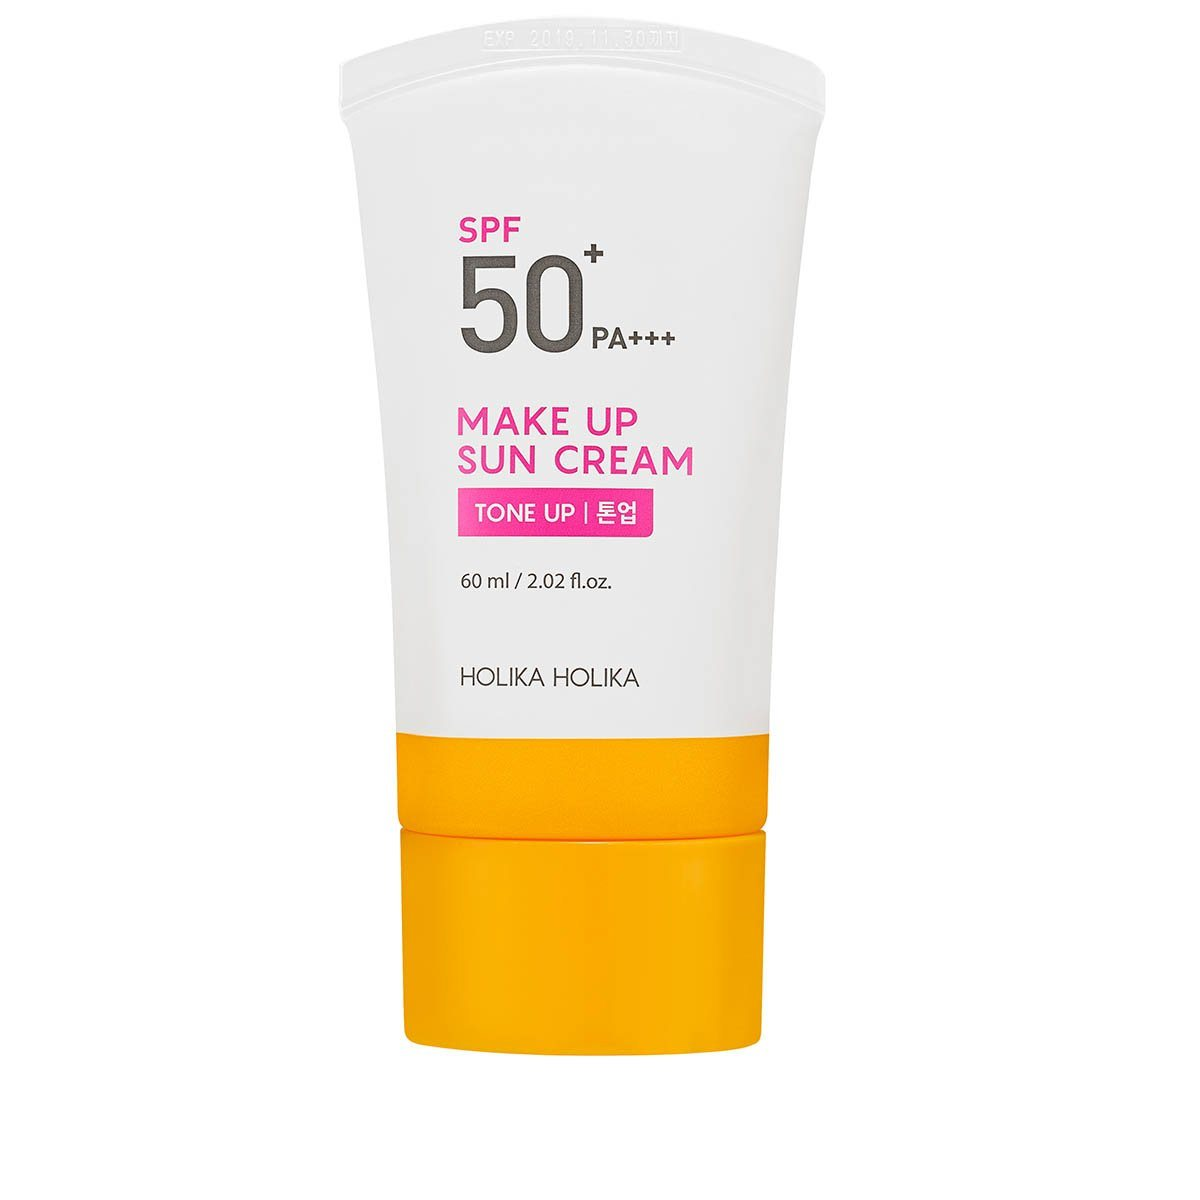 Health & Beauty > Personal Care > Cosmetics > Skin Care > Sunscreen - Make Up Sun Cream 50+ PA++++ Krem Przeciwsłoneczny 60 Ml